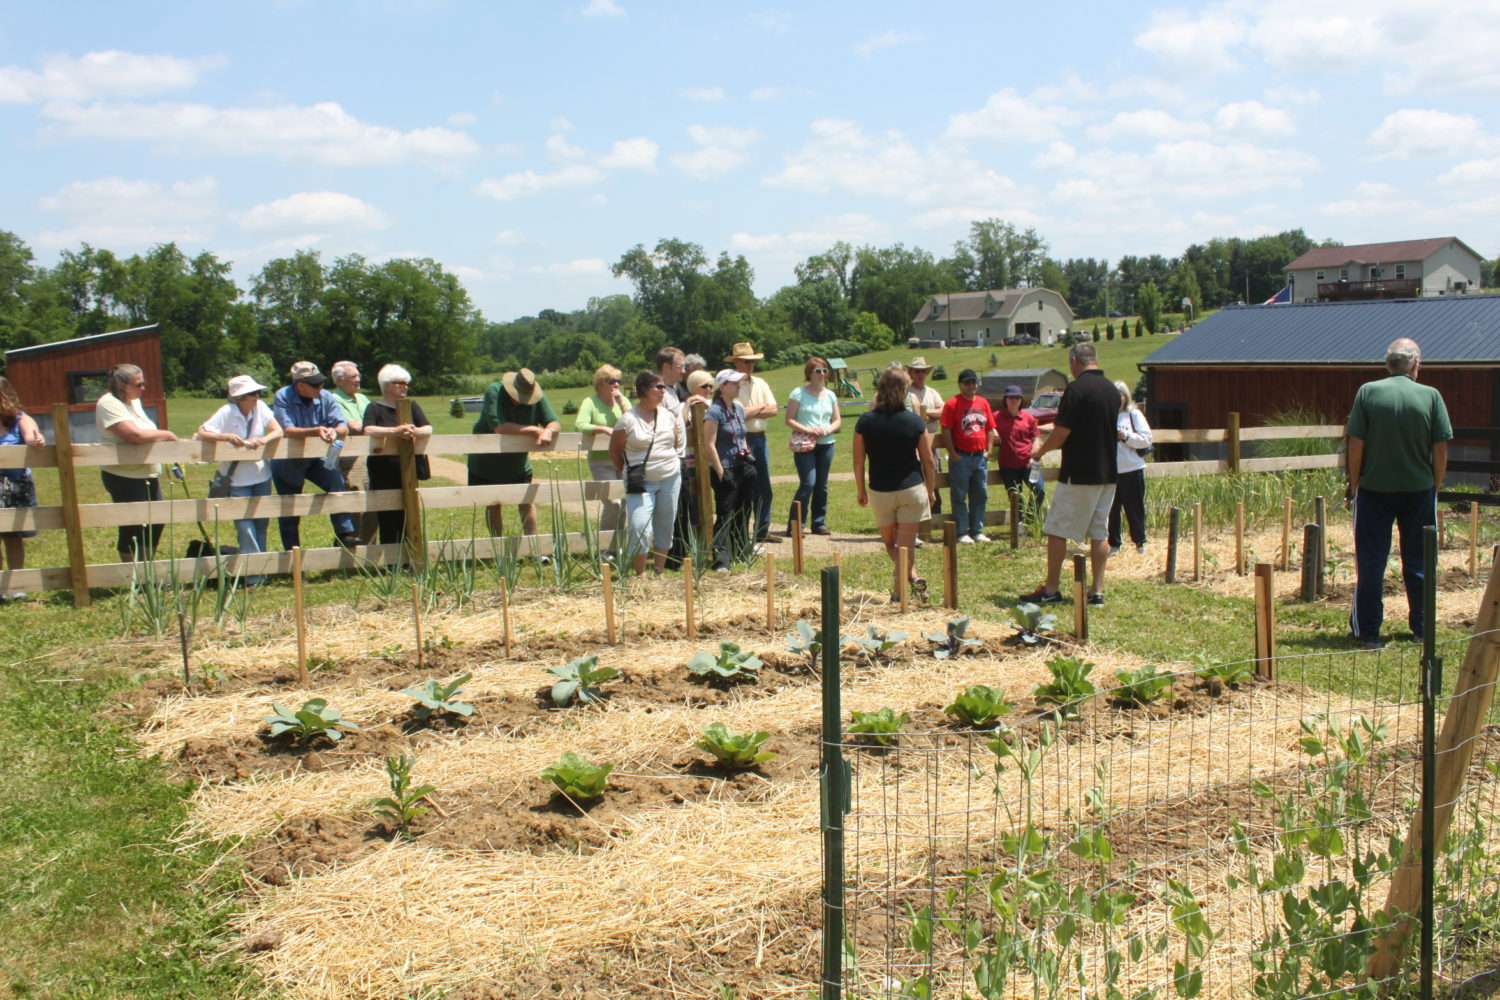 Raised Row Gardening And Canning Classes At The Farm – Come Join Us As Our Guest!